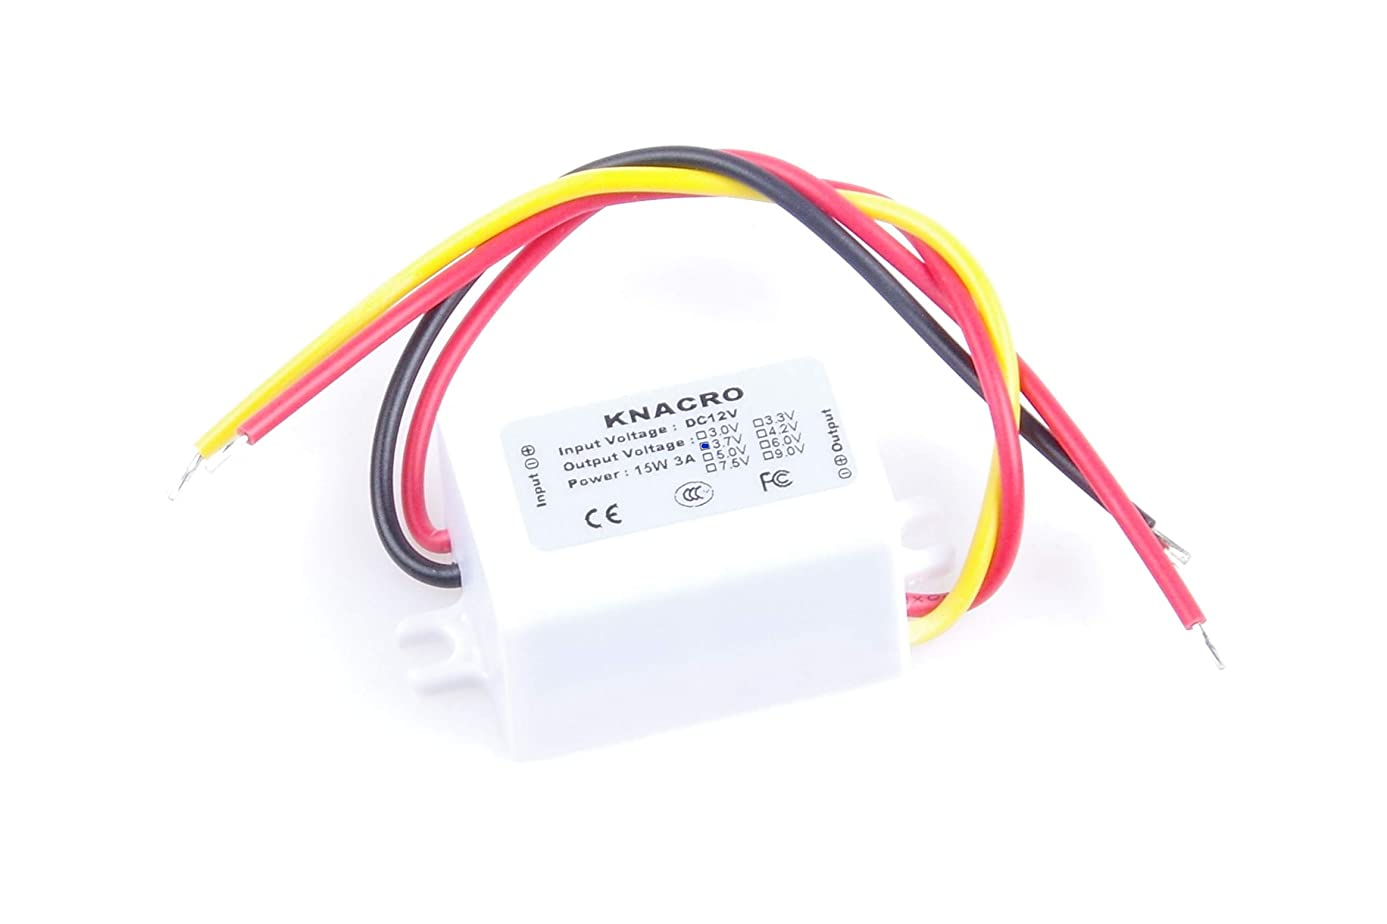 KNACRO Waterproof DC-DC 12V to 3.7V 3A 11.1W Step-Down Power Supply Module Car Power Converter Module Synchronous Buck Over-Temperature Over-Current Short Circuit Protection Suitable